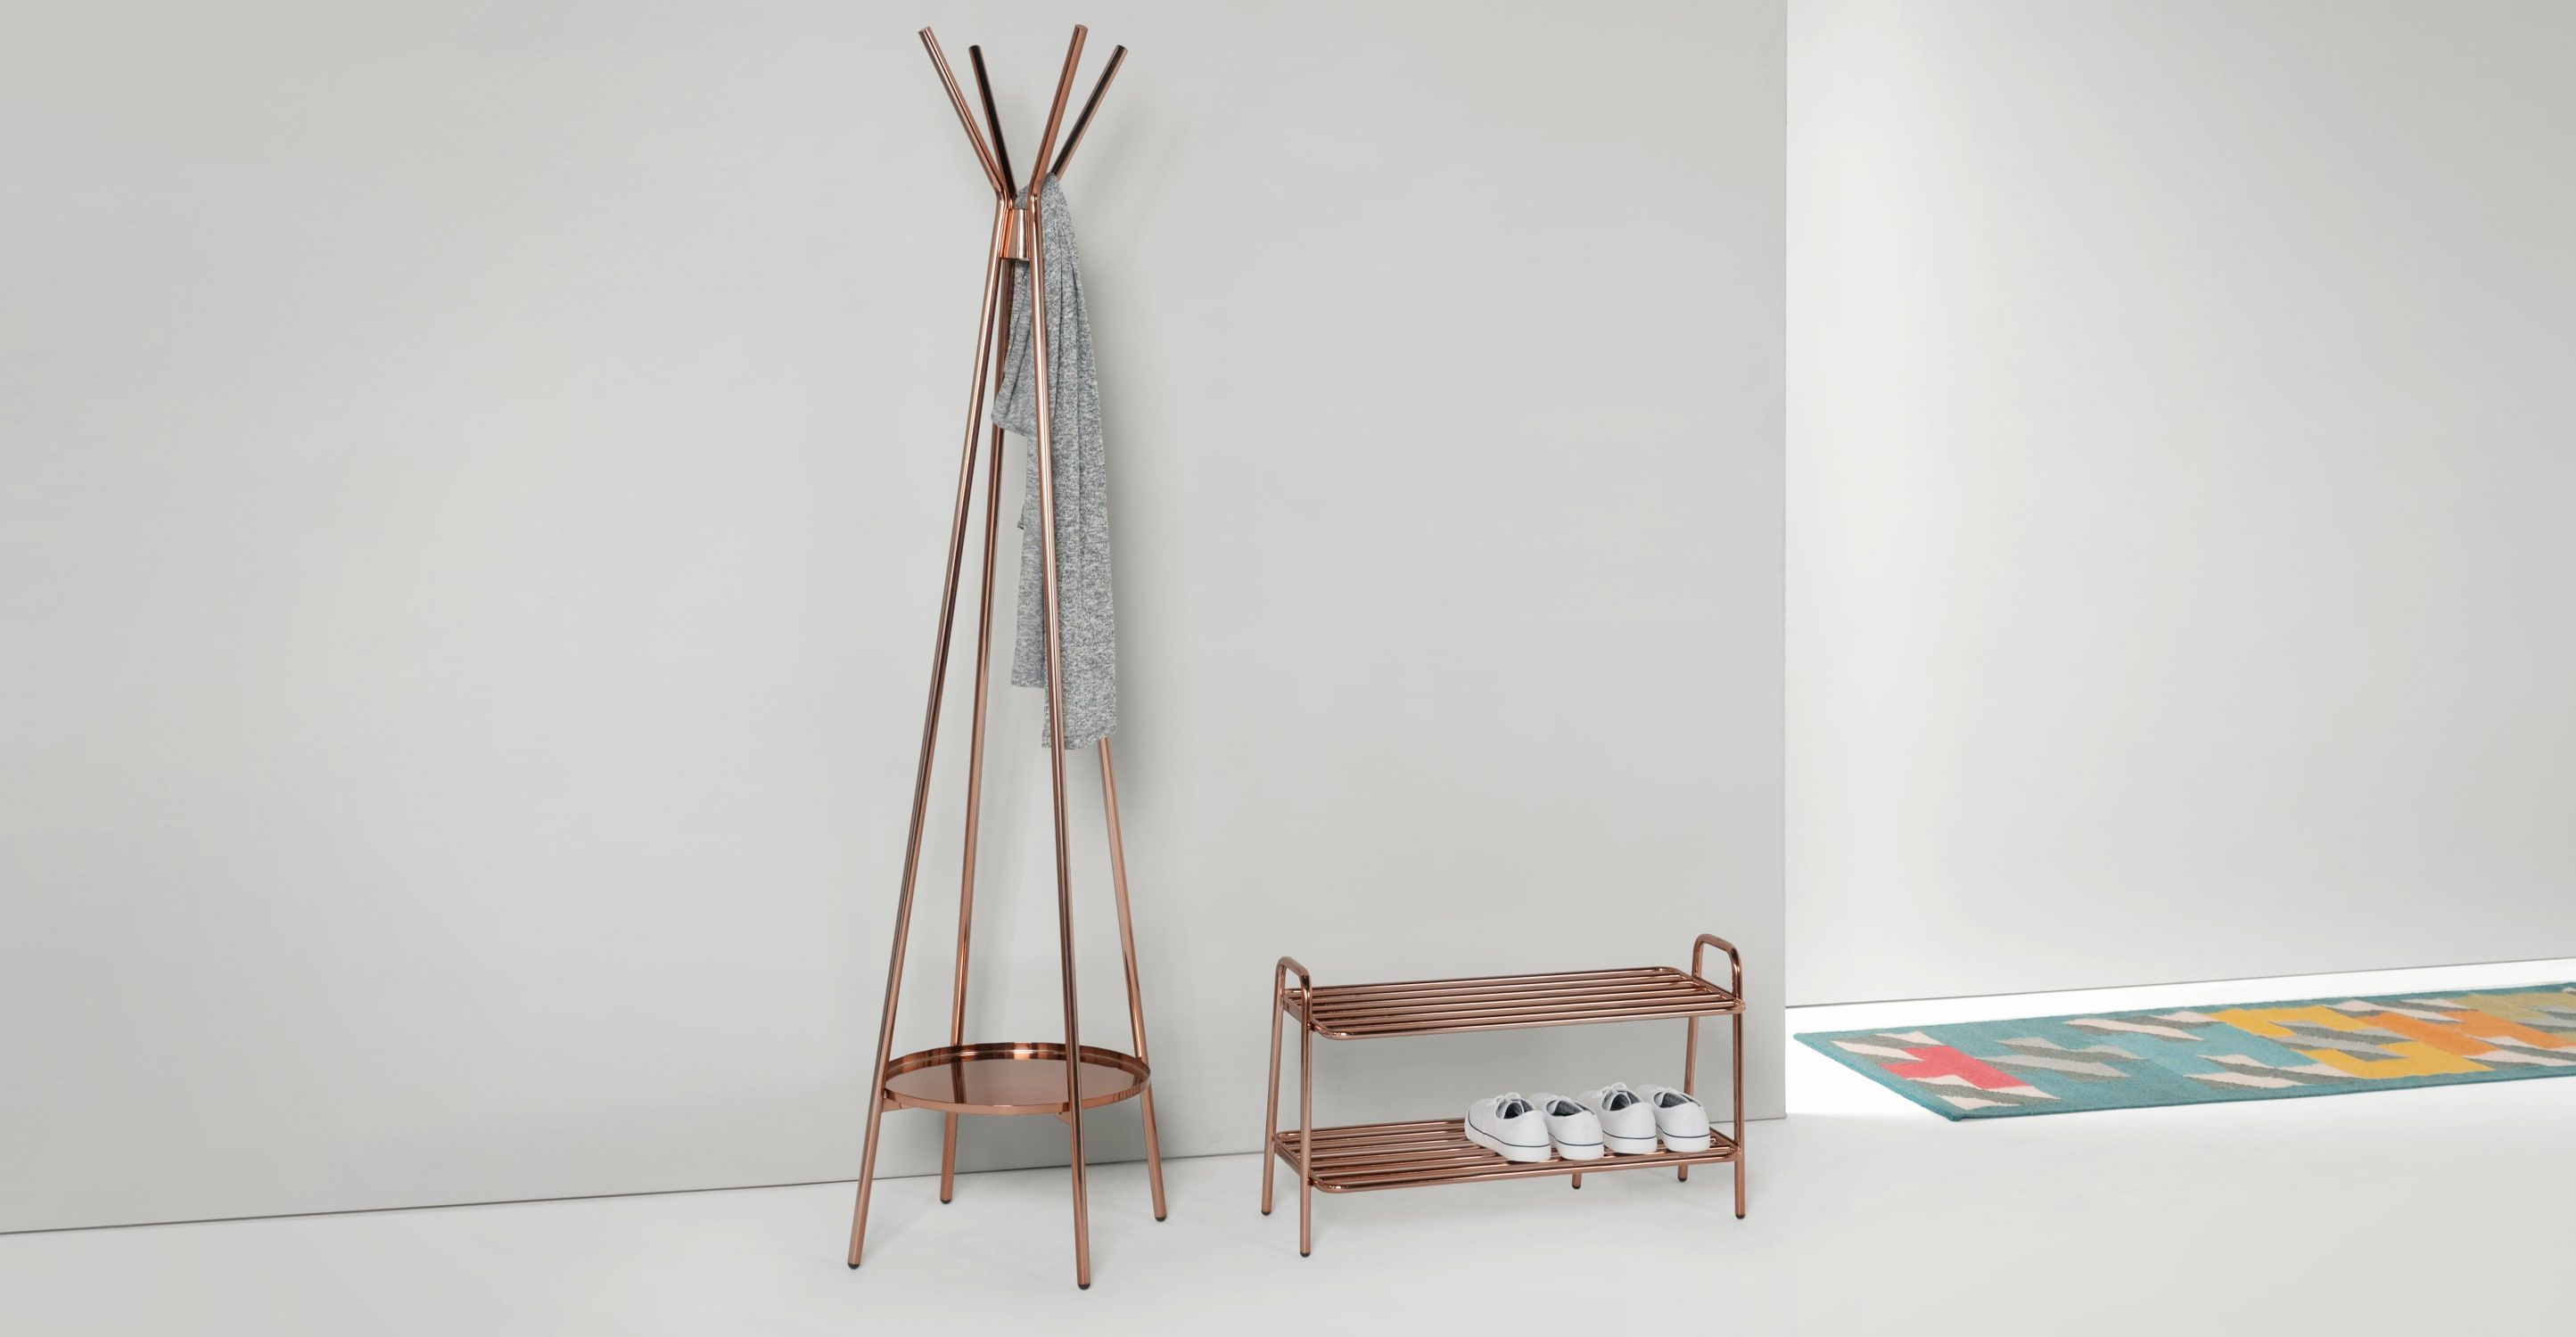 Alana Garderobenständer, Kupfer | Coat stands, Shoe rack and House